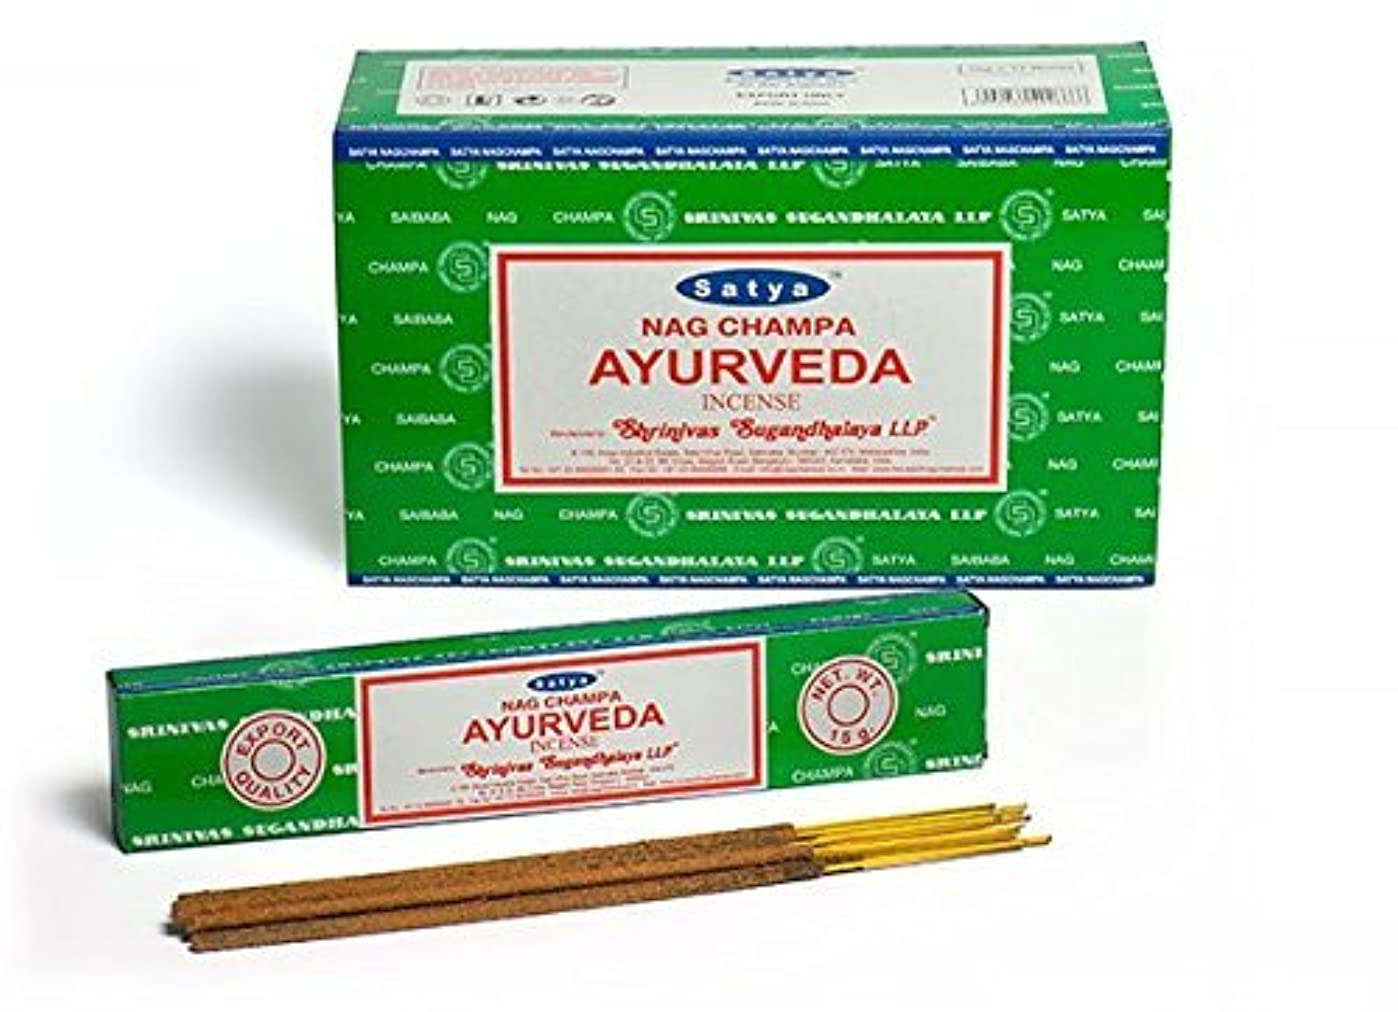 驚いたことに予約チャンピオンシップBuycrafty Satya Champa Ayurveda Incense Stick,180 Grams Box (15g x 12 Boxes)